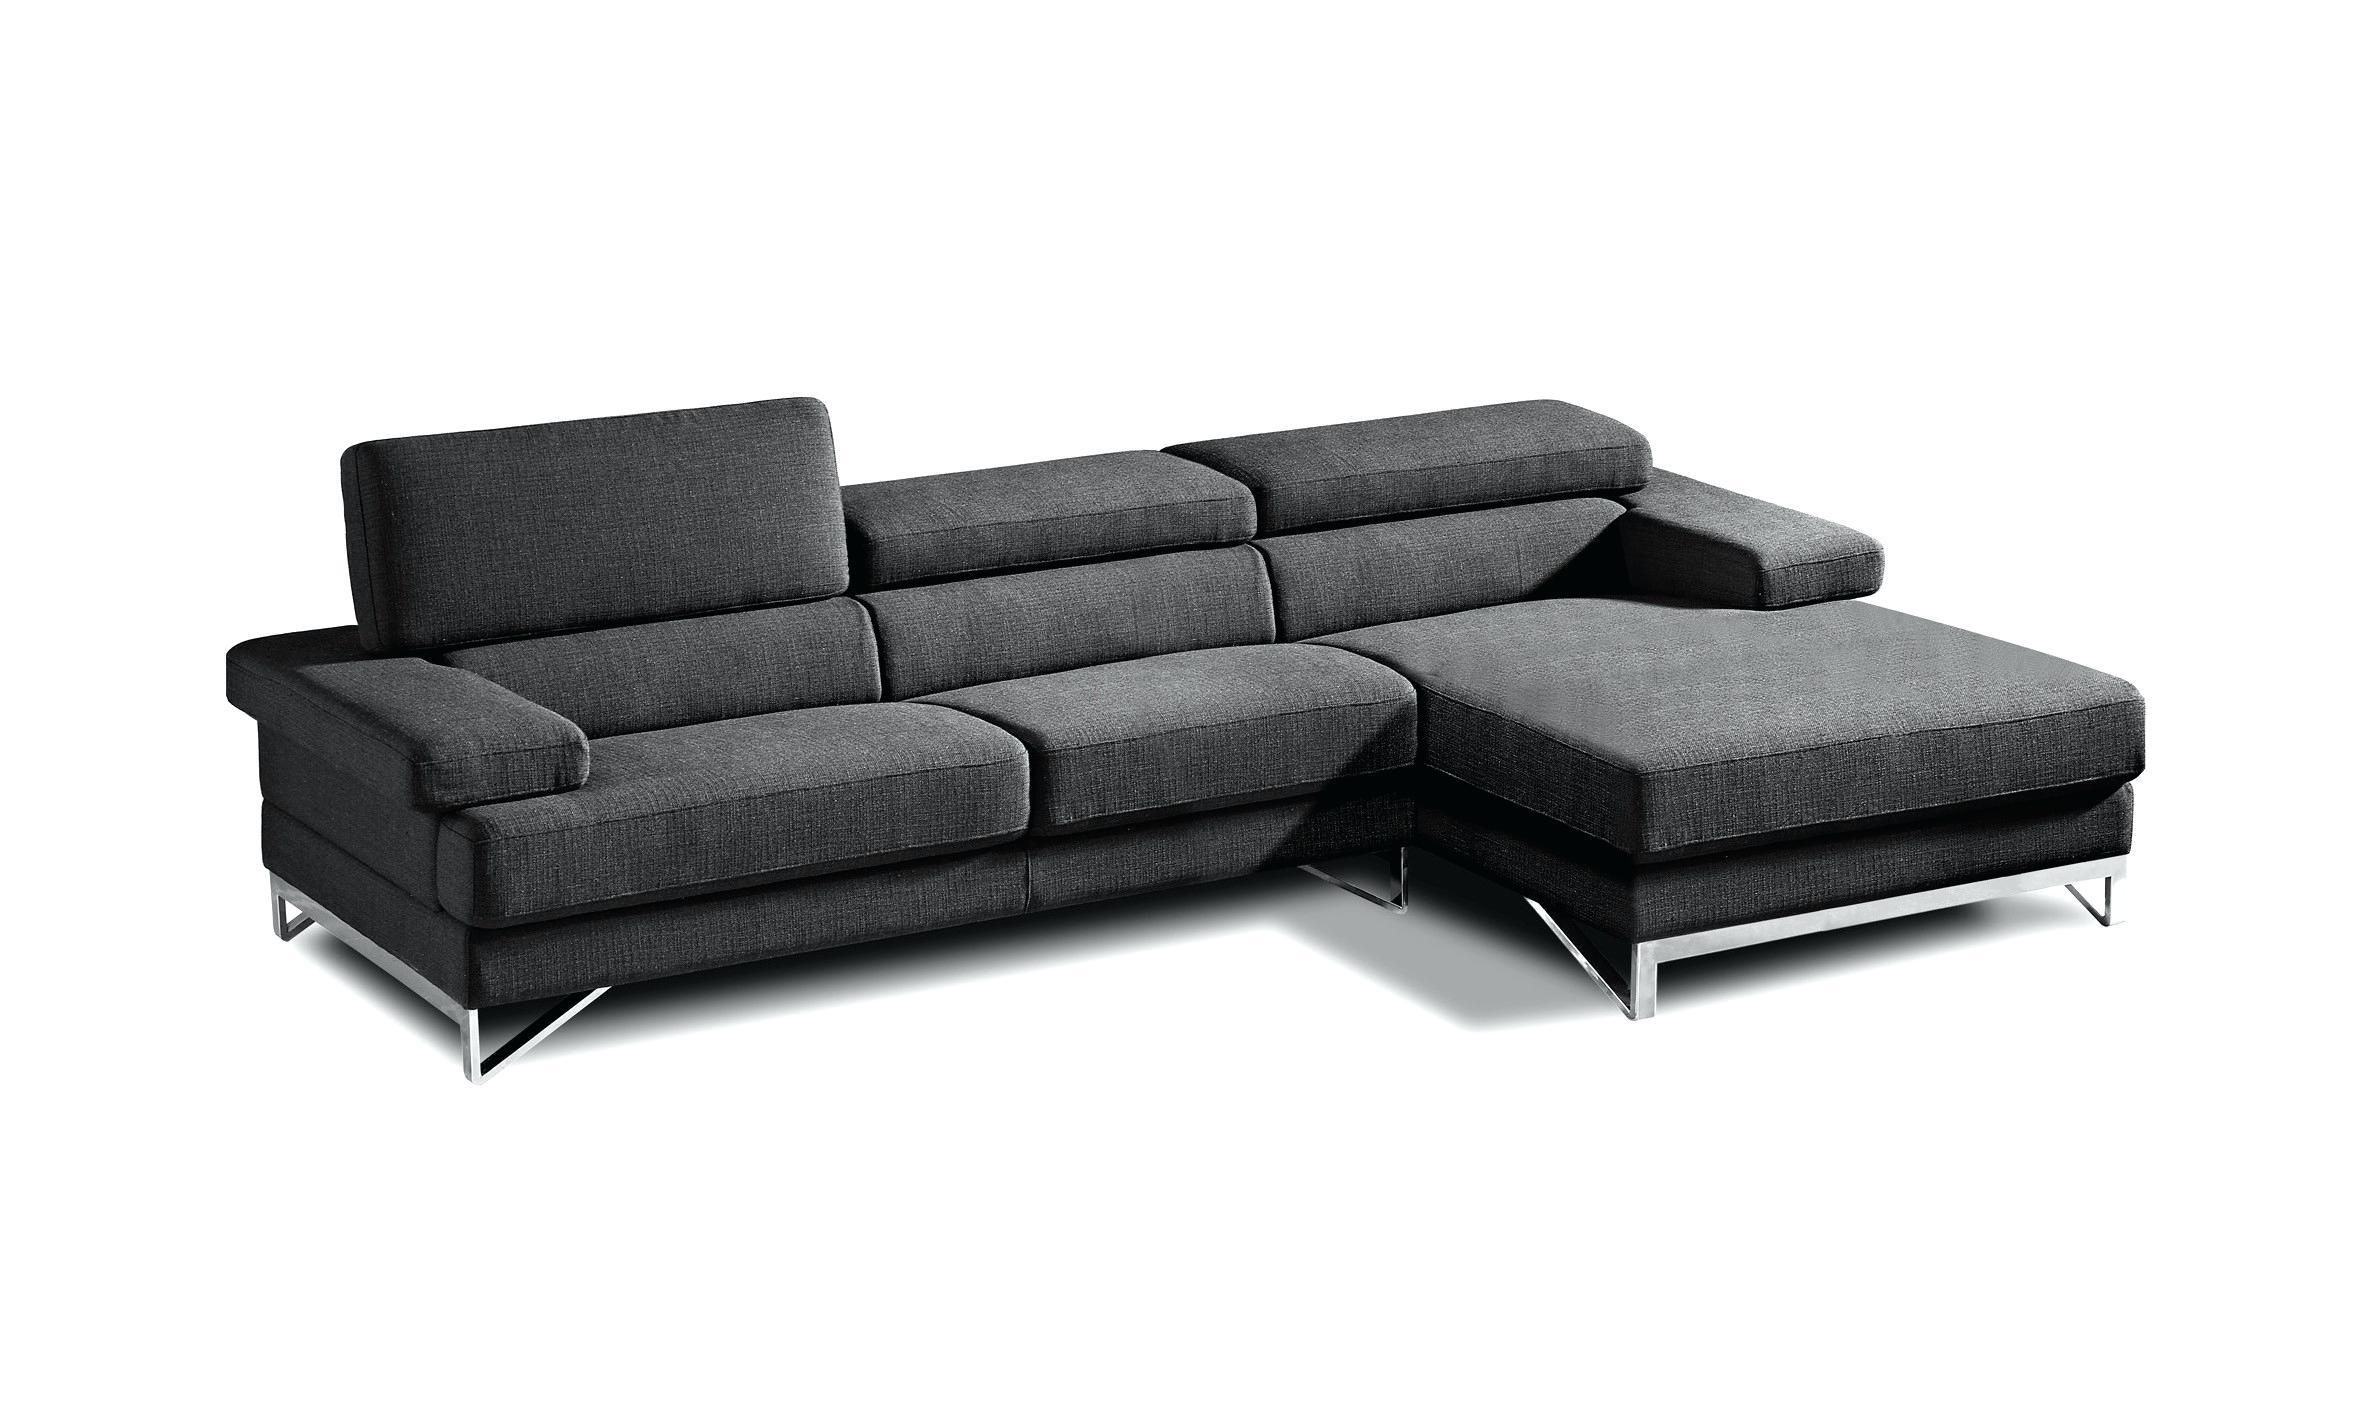 Couches Edmonton Sofa Bed Edmonton Livingroom Wonderful Sofa Edmonton